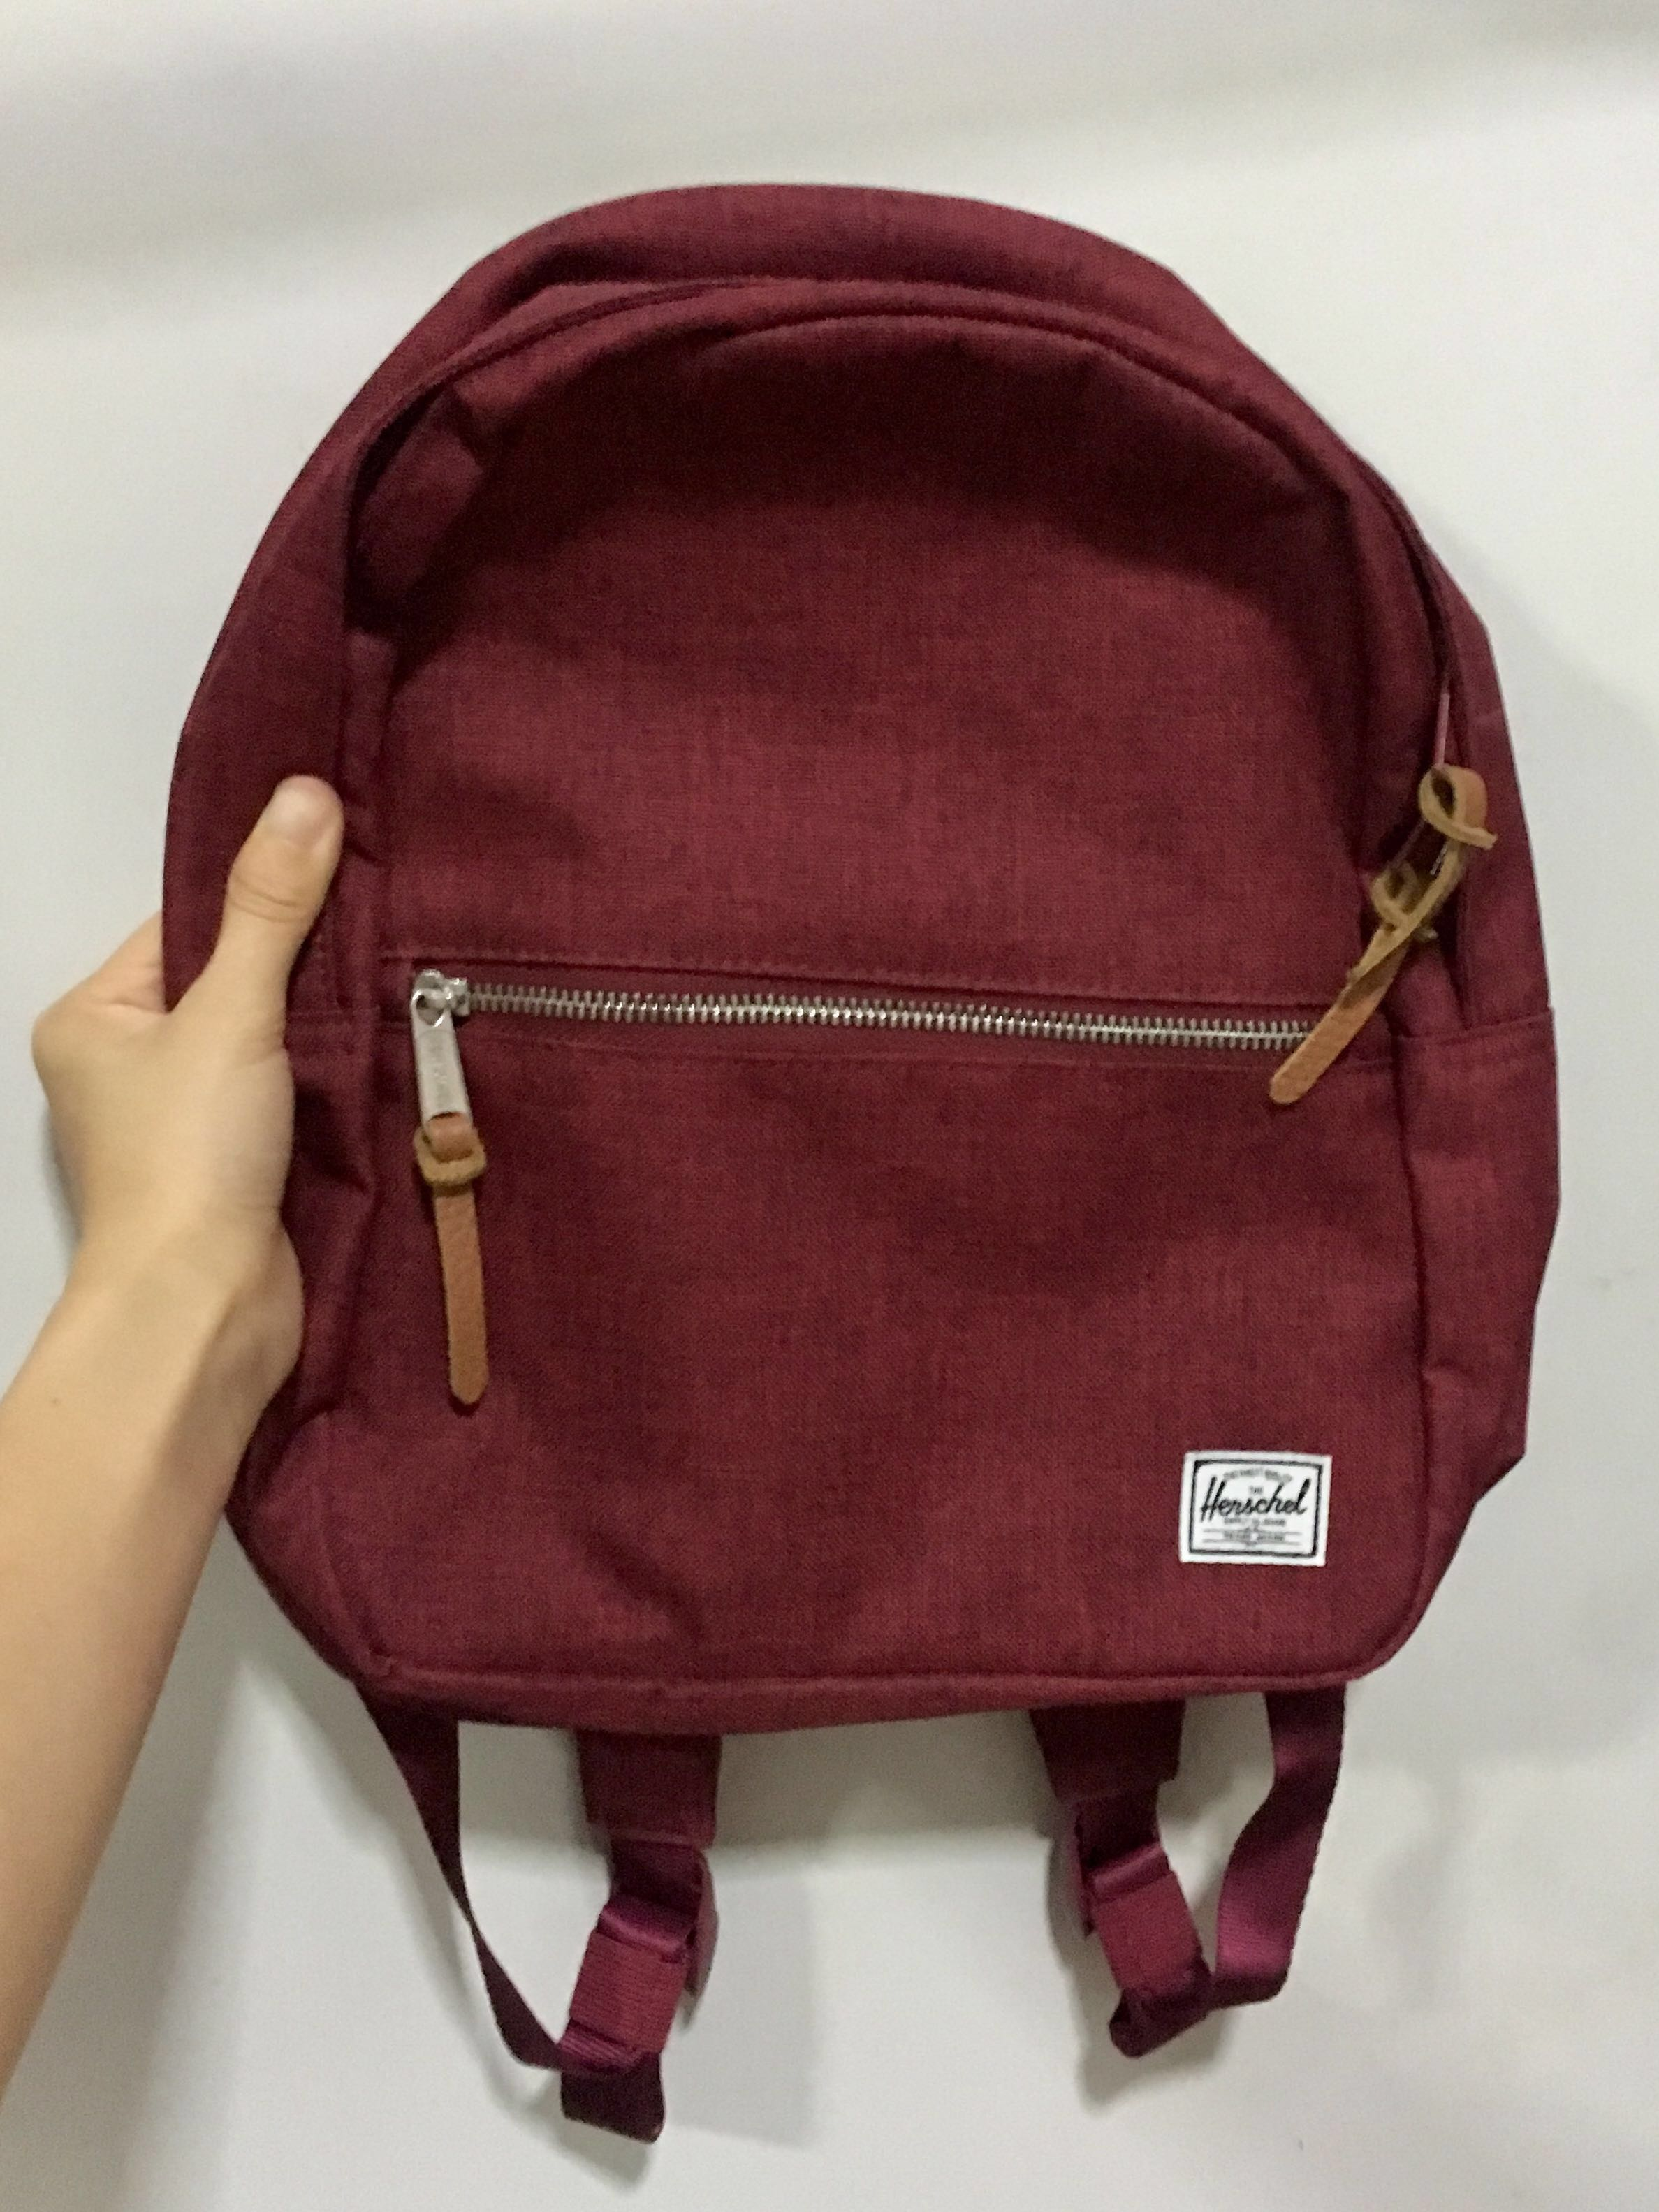 8343dba1747 Authentic Herschel Town XS Backpack